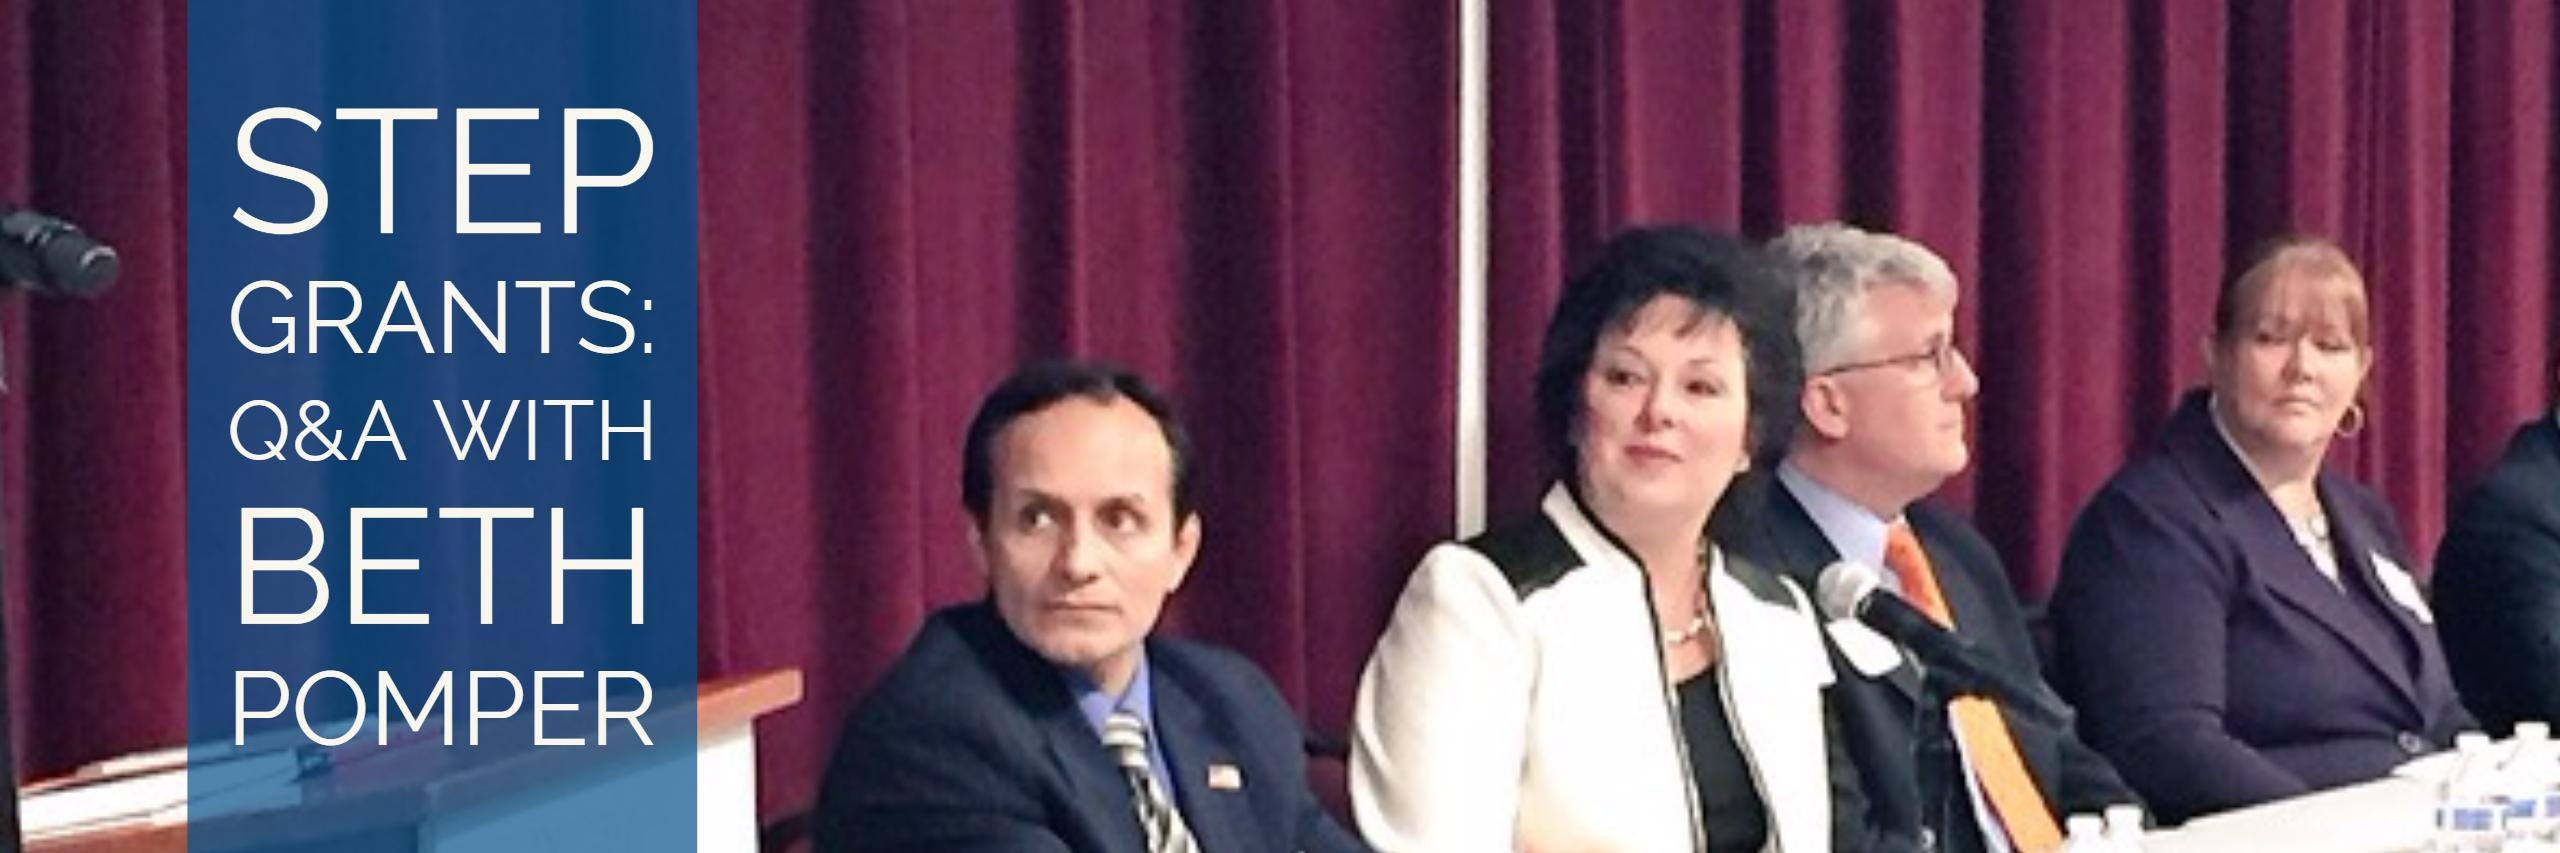 STEP grant, Q&A with Beth Pomper, step funding available, delaware exporters